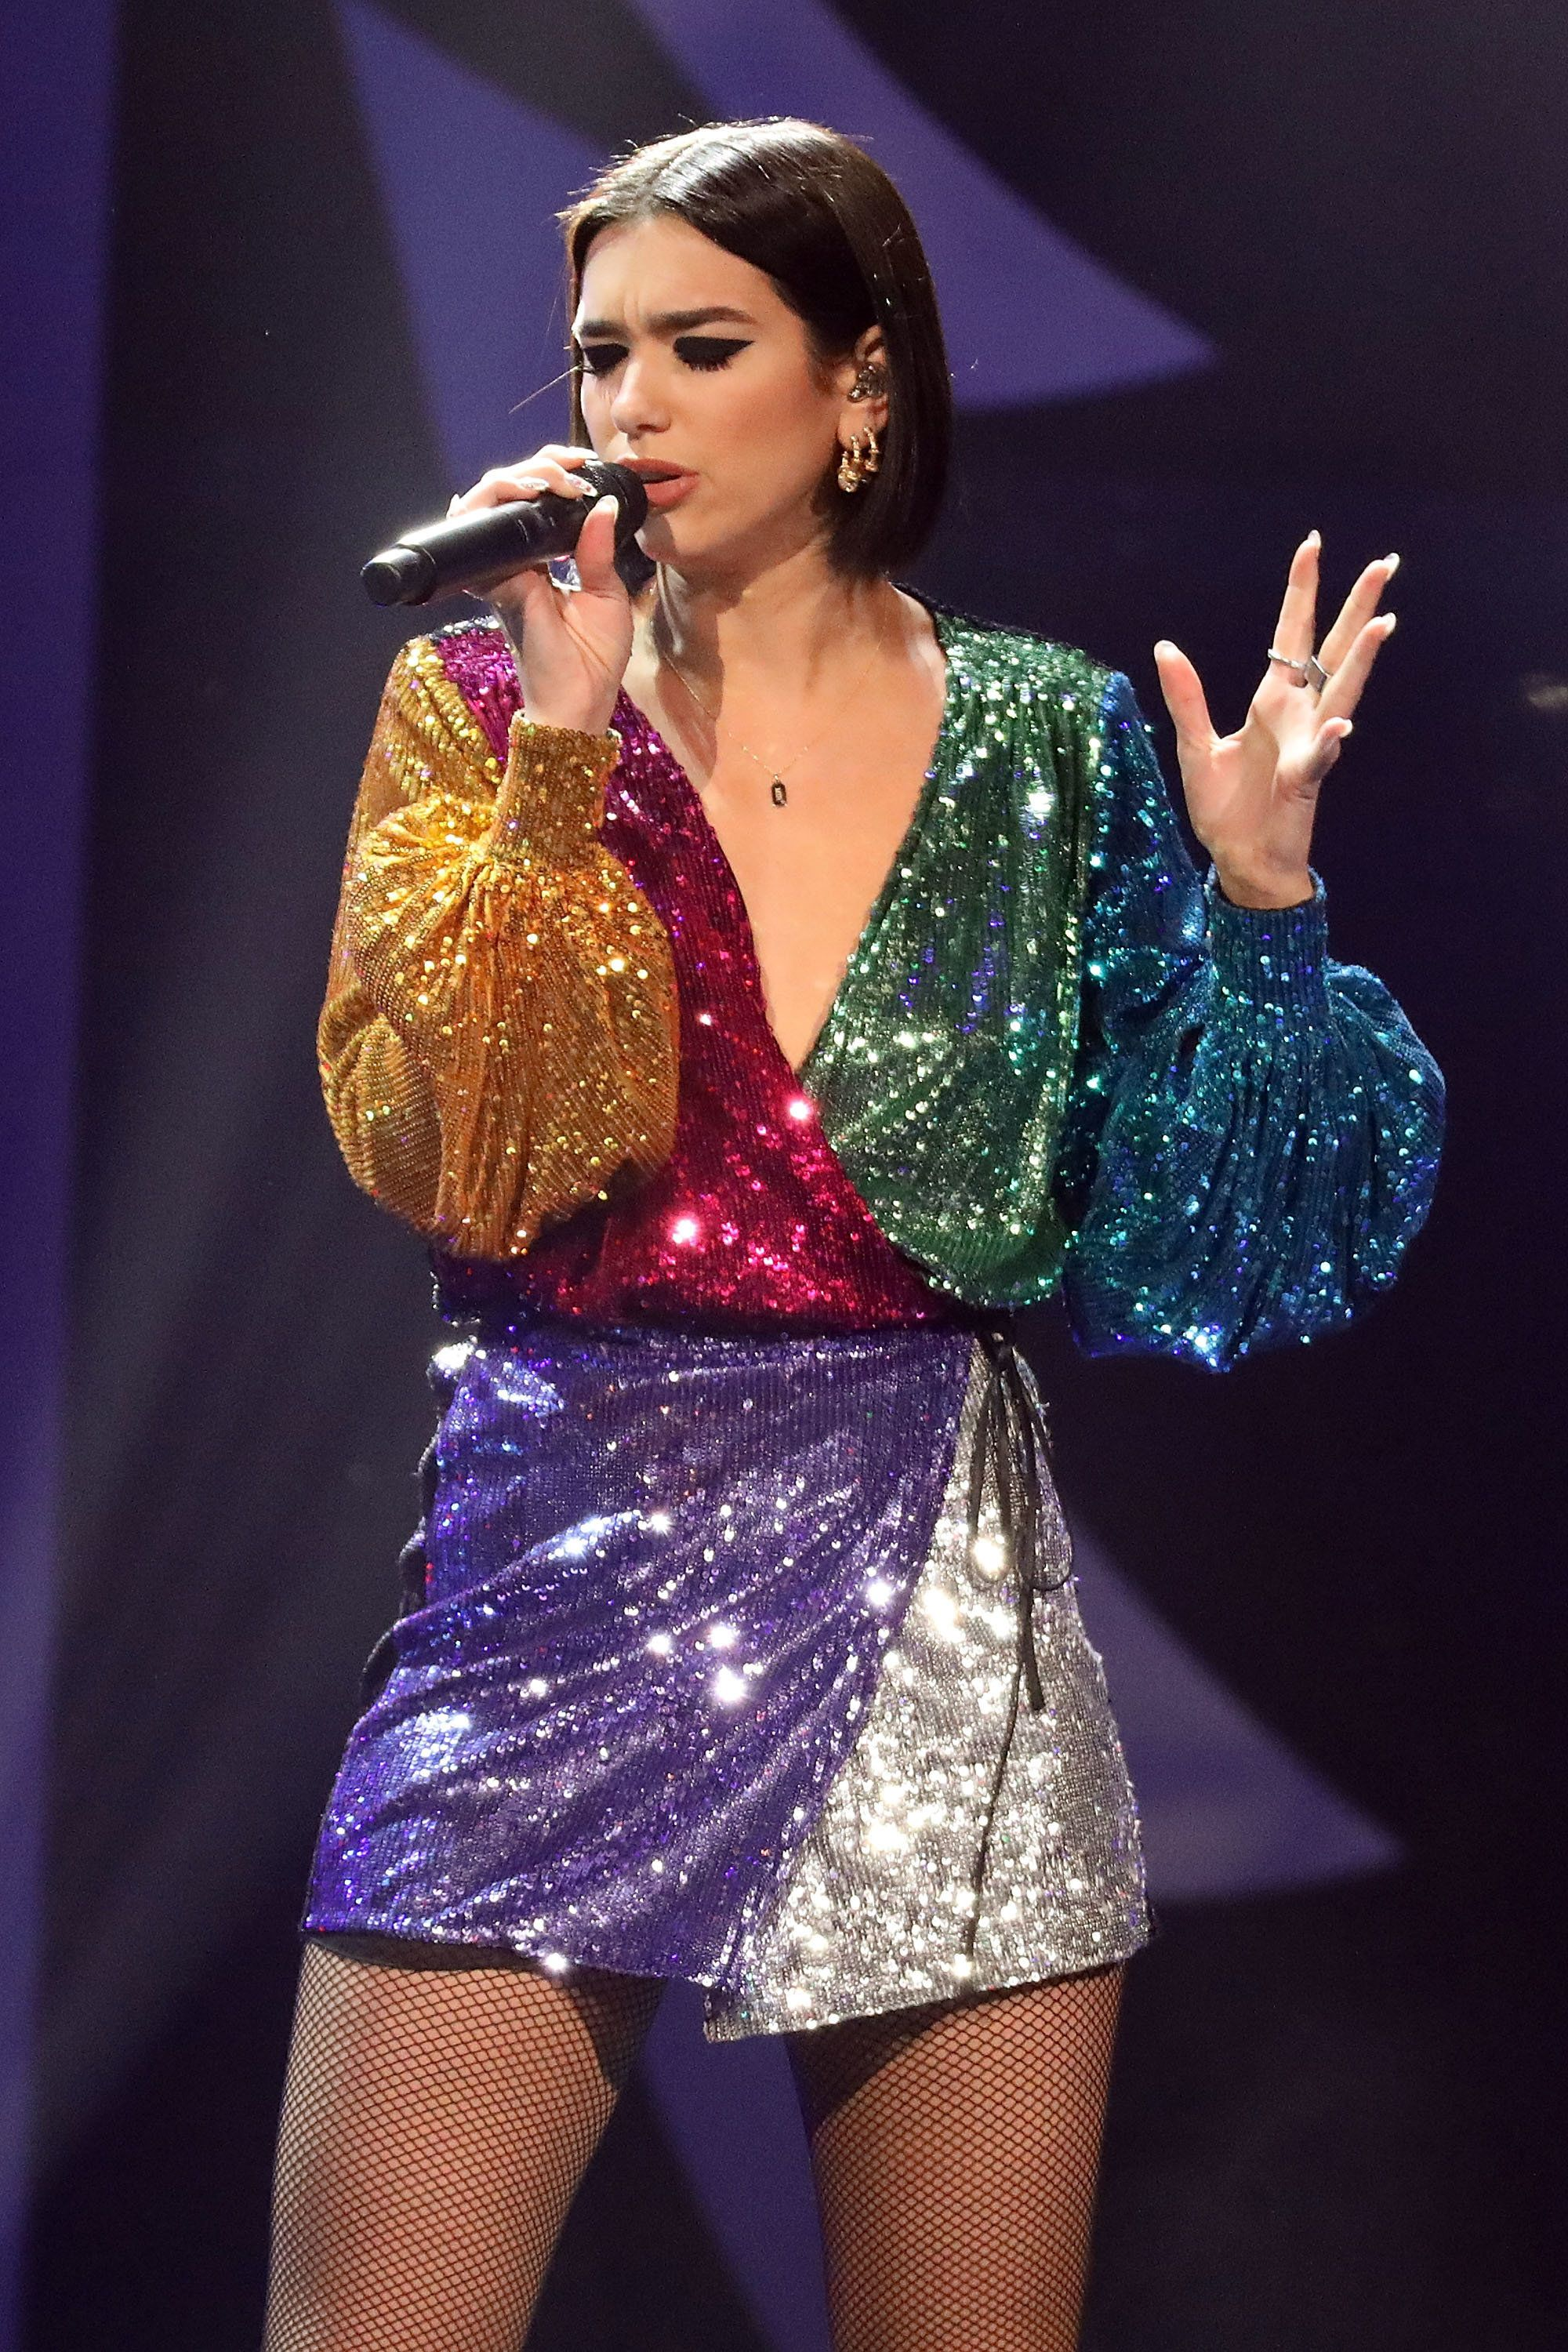 NEW YORK, NY - DECEMBER 07:  Dua Lipa performs during the 2018 Z100 Jingle Ball at Madison Square Garden on December 7, 2018 in New York City.  (Photo by Taylor Hill/FilmMagic)